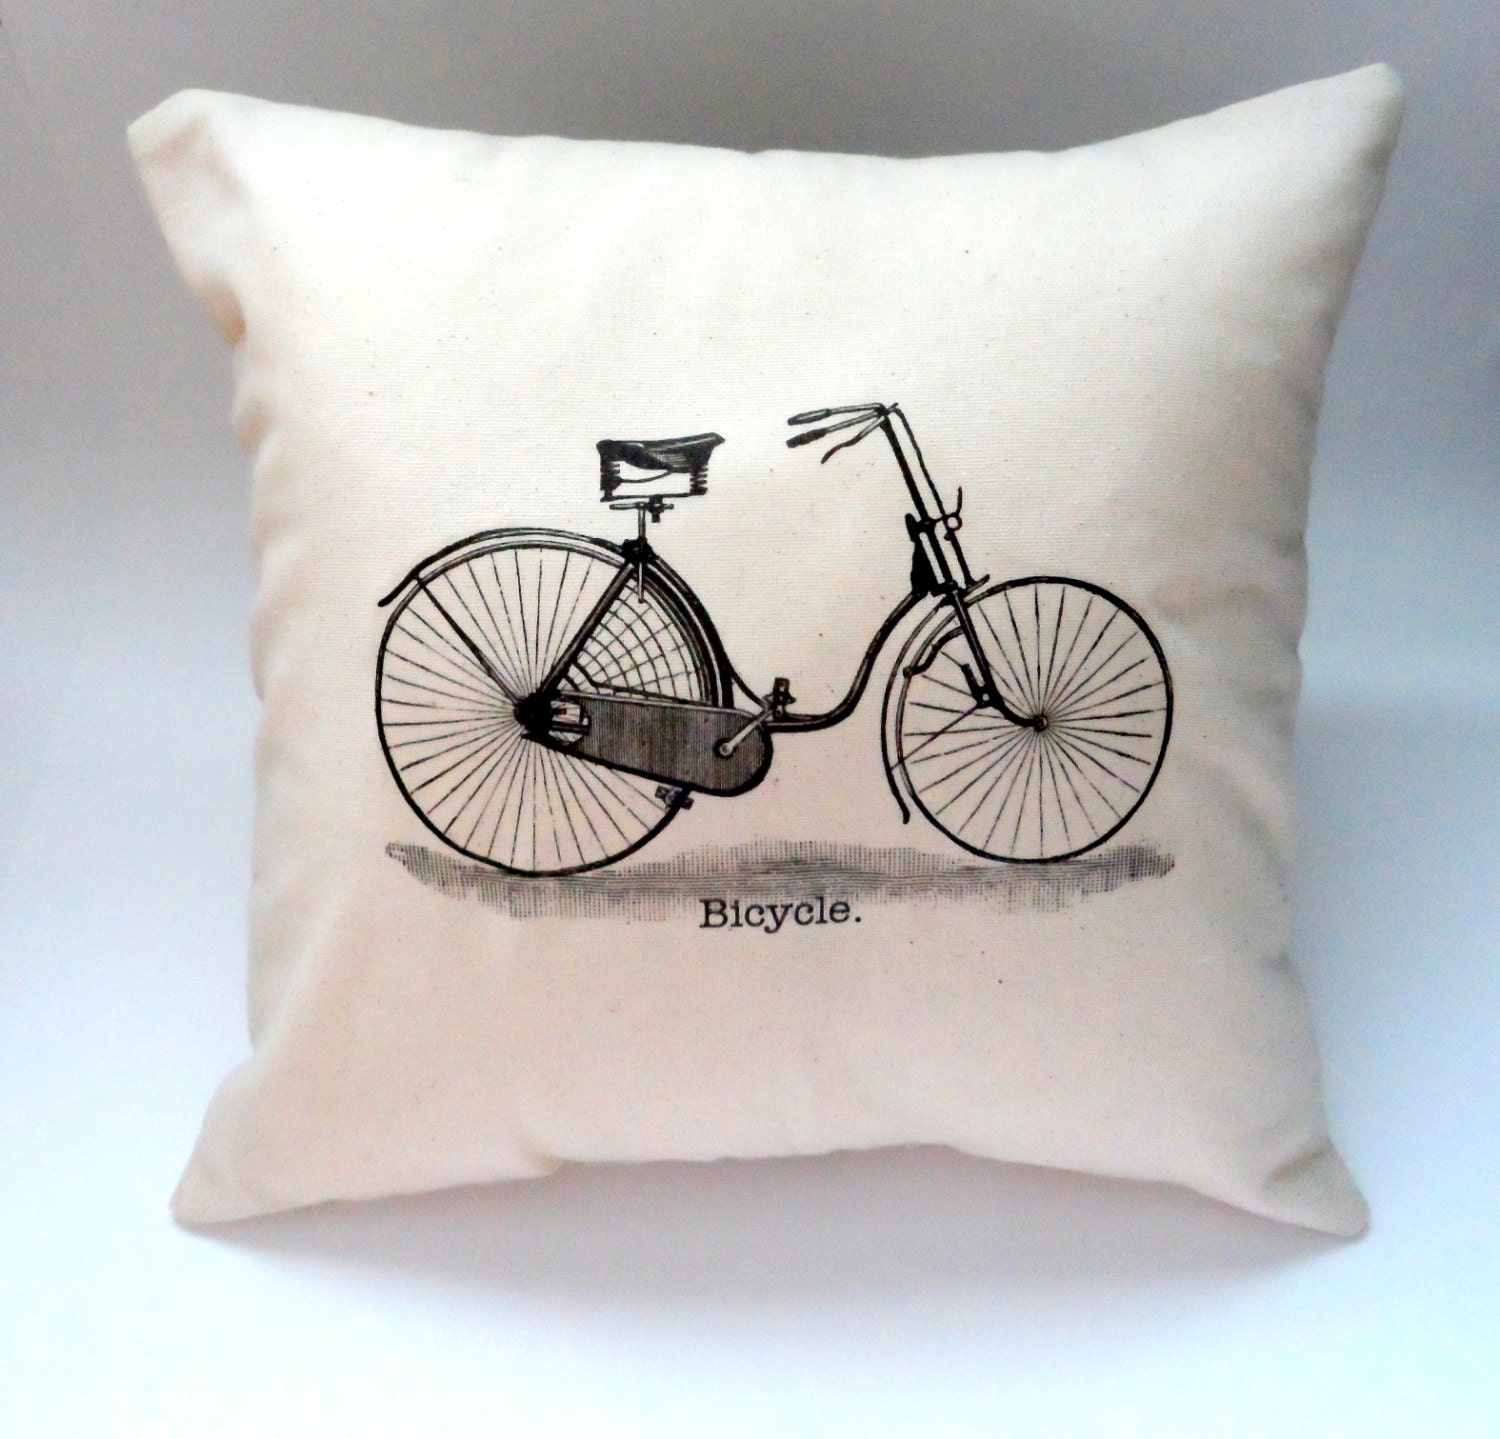 14X14 Hipster Vintage Bicycle Pillow Slip Cover Shabby Chic